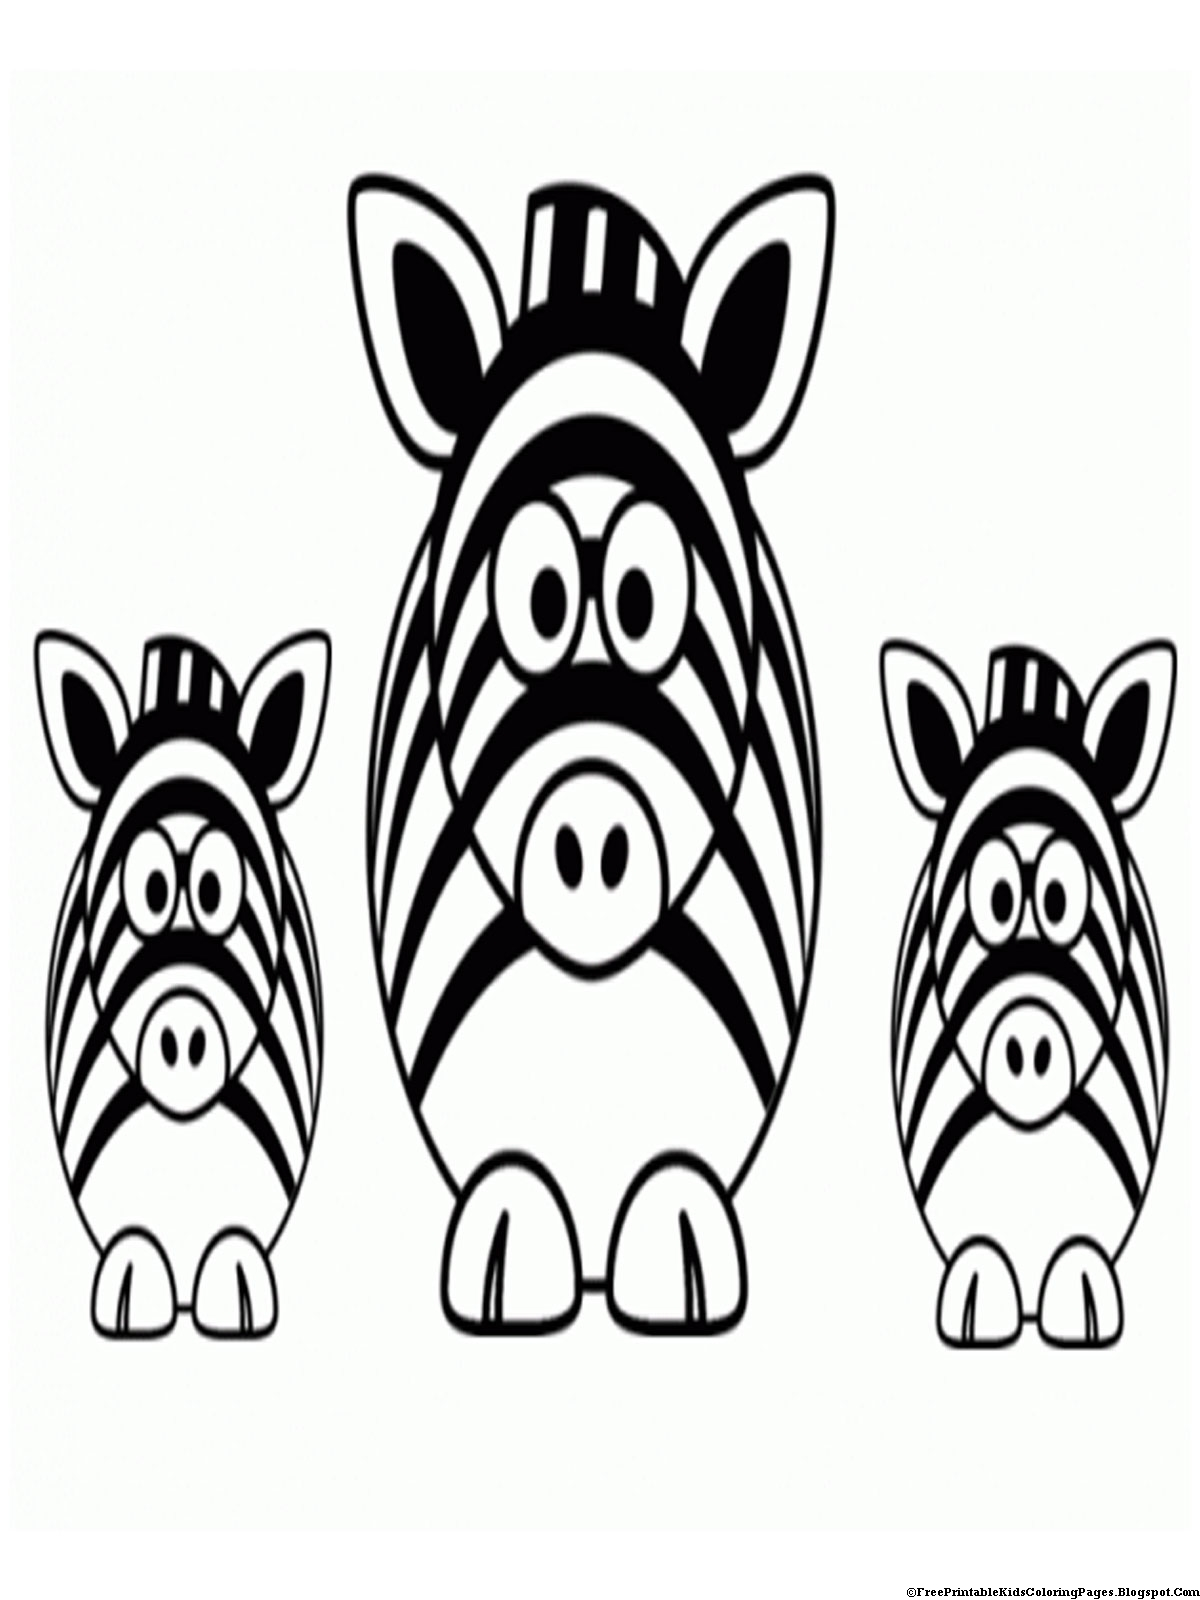 zebra coloring pages without stripes - photo #6